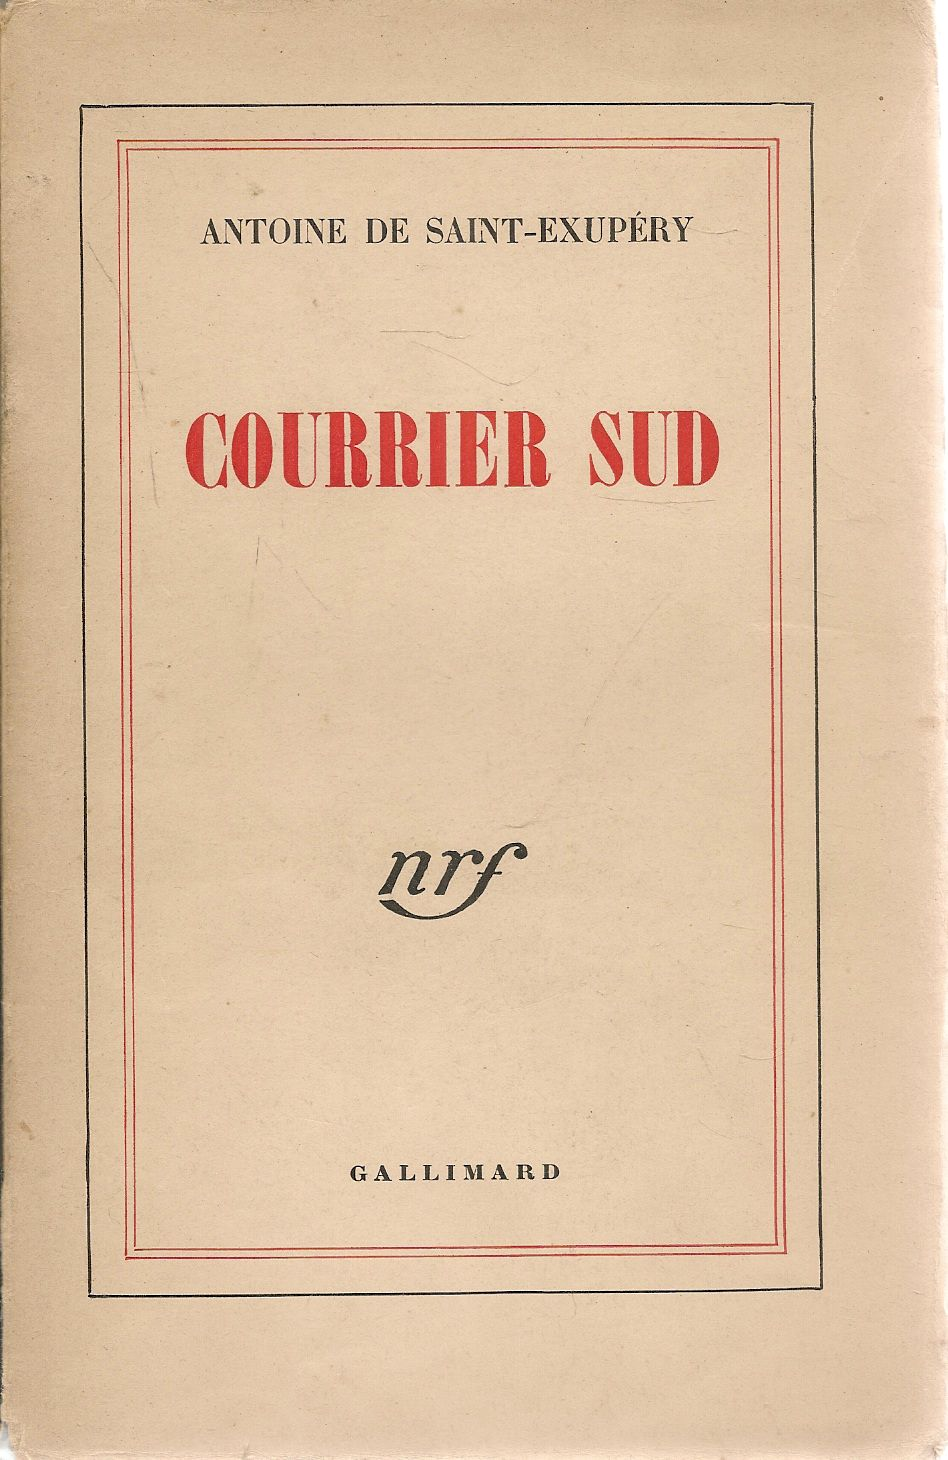 COURRIER SUD - ANTOIONE DE SAINT-EXUPERY - GALLIMARD 1967 - FRENCH TEXT